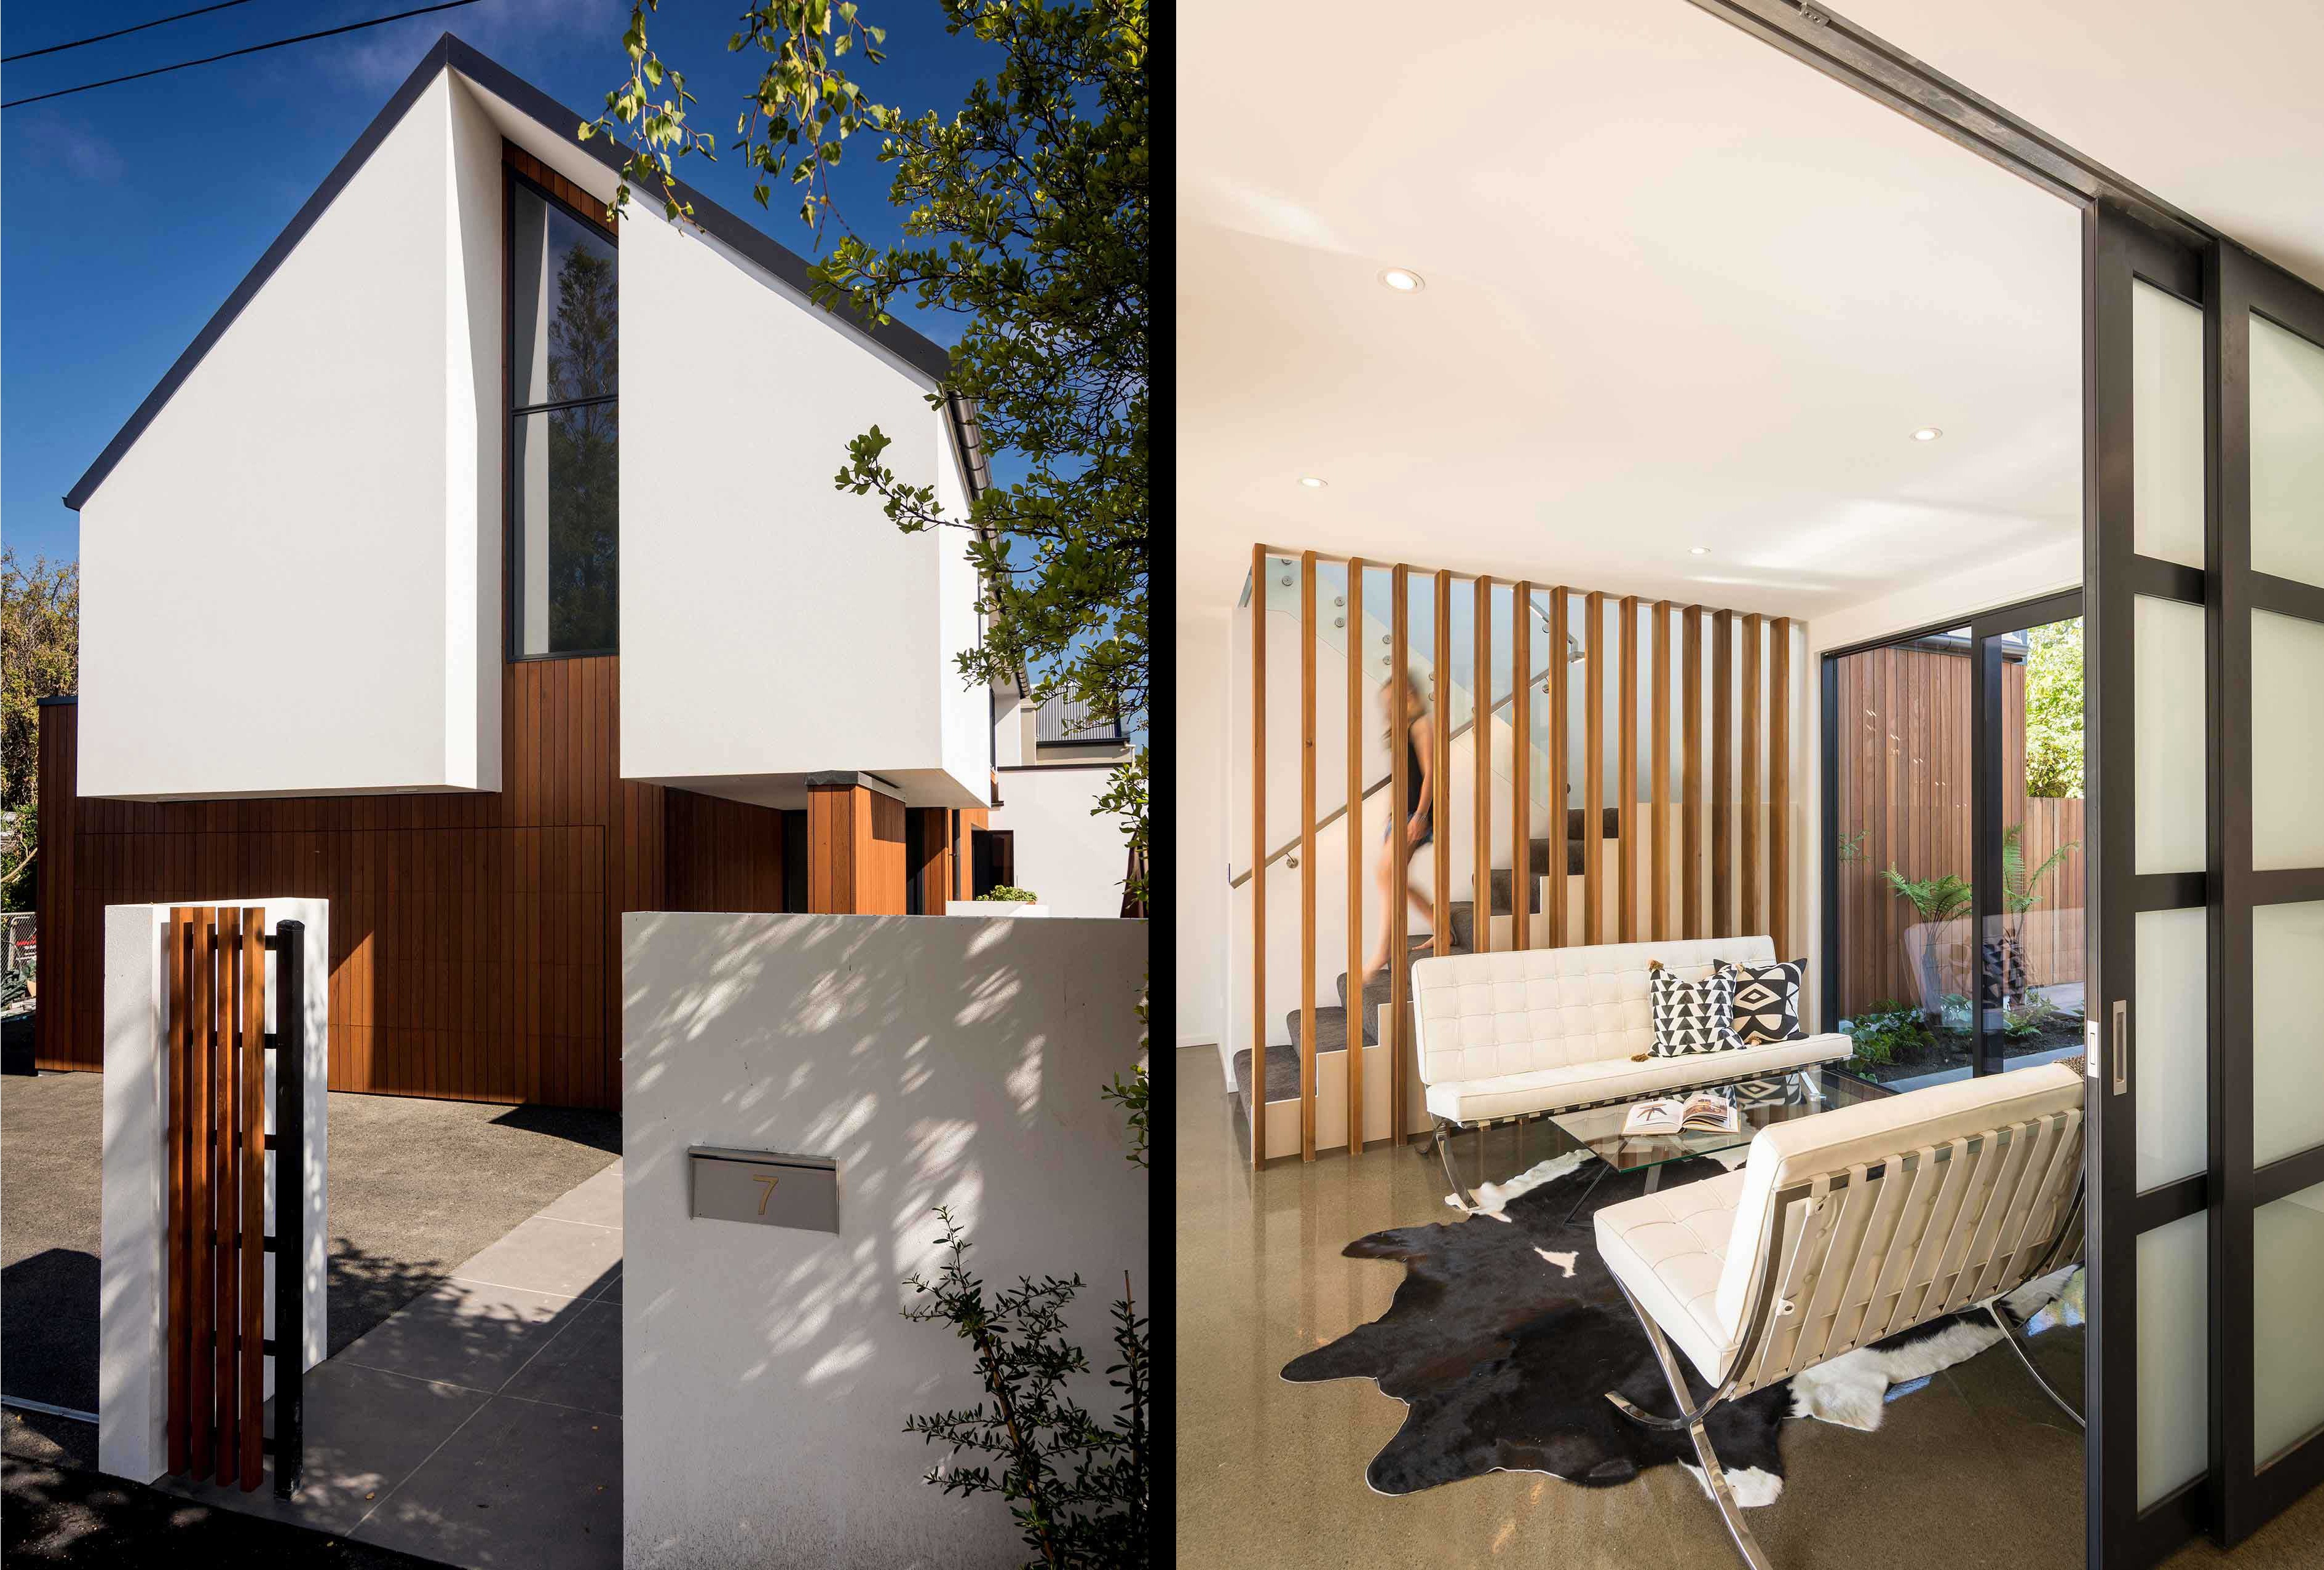 Composite of the Rutland Street house's frontage (depicted on the left), and a woman descending the staircase into a space adorned with modernist furniture (depicted on the right)